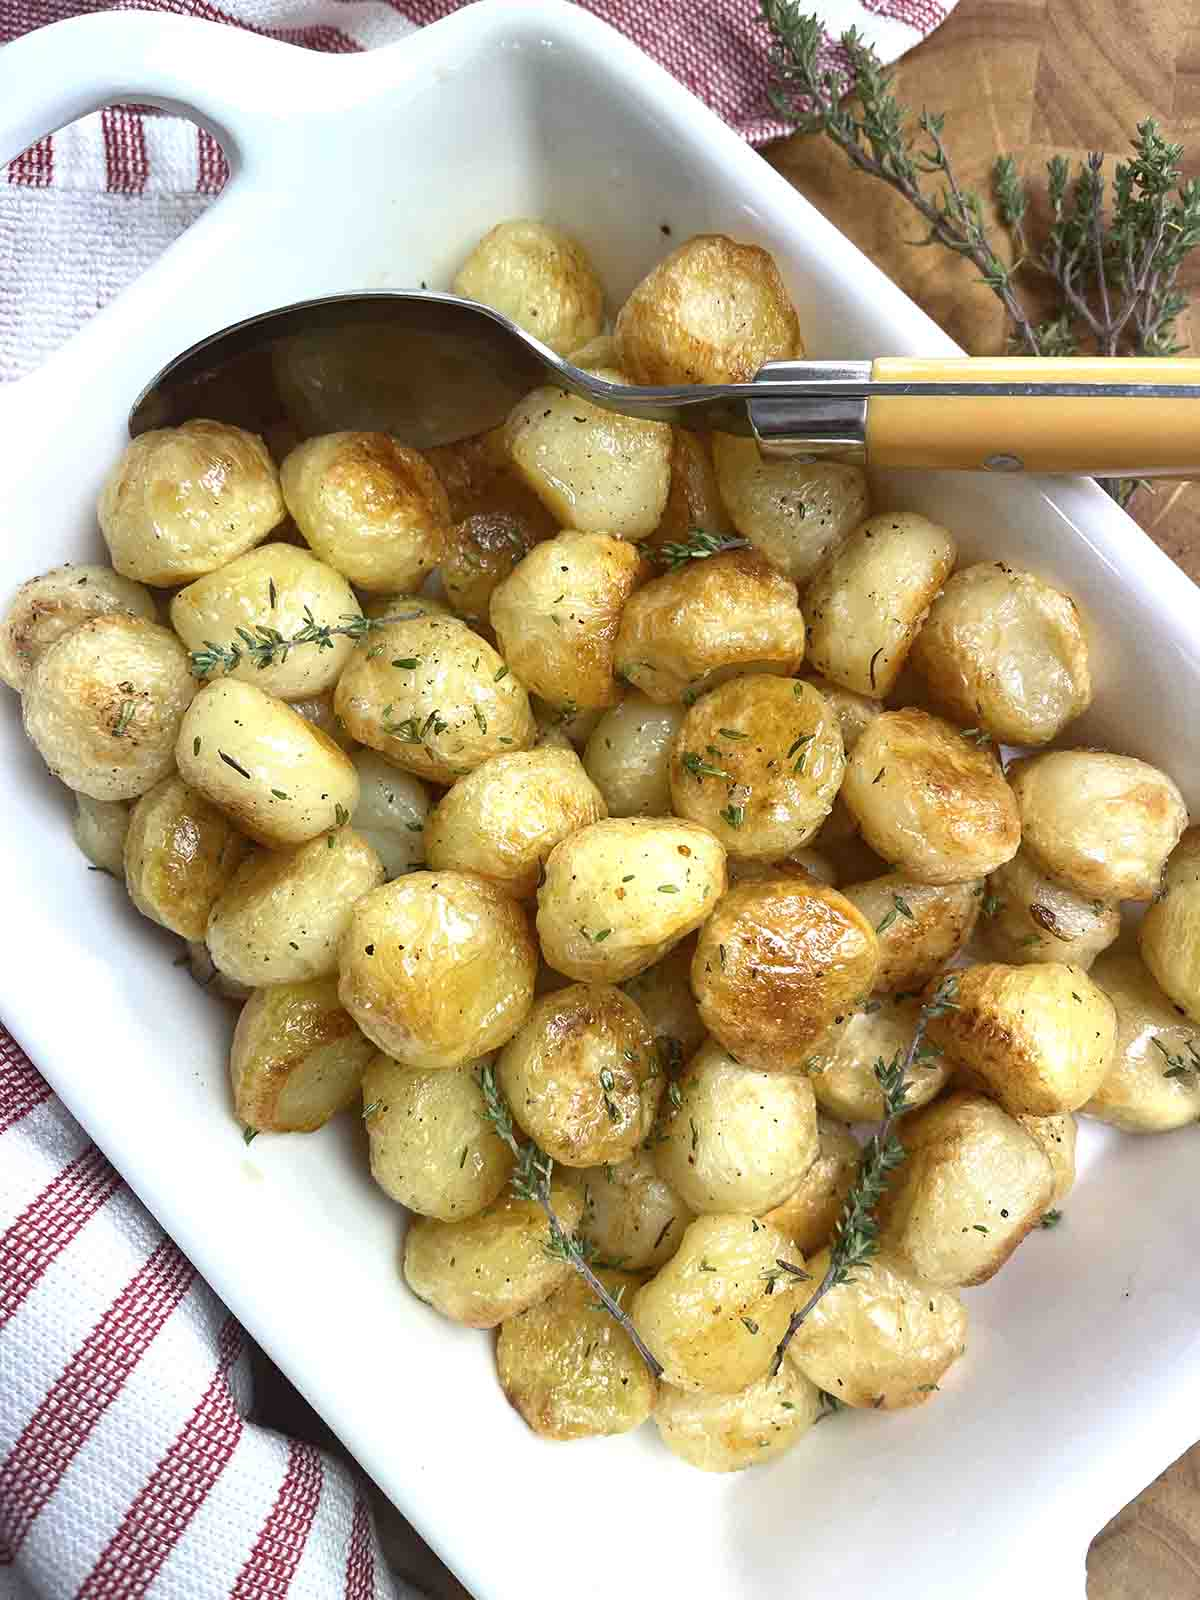 noisette potatoes in a serving dish.